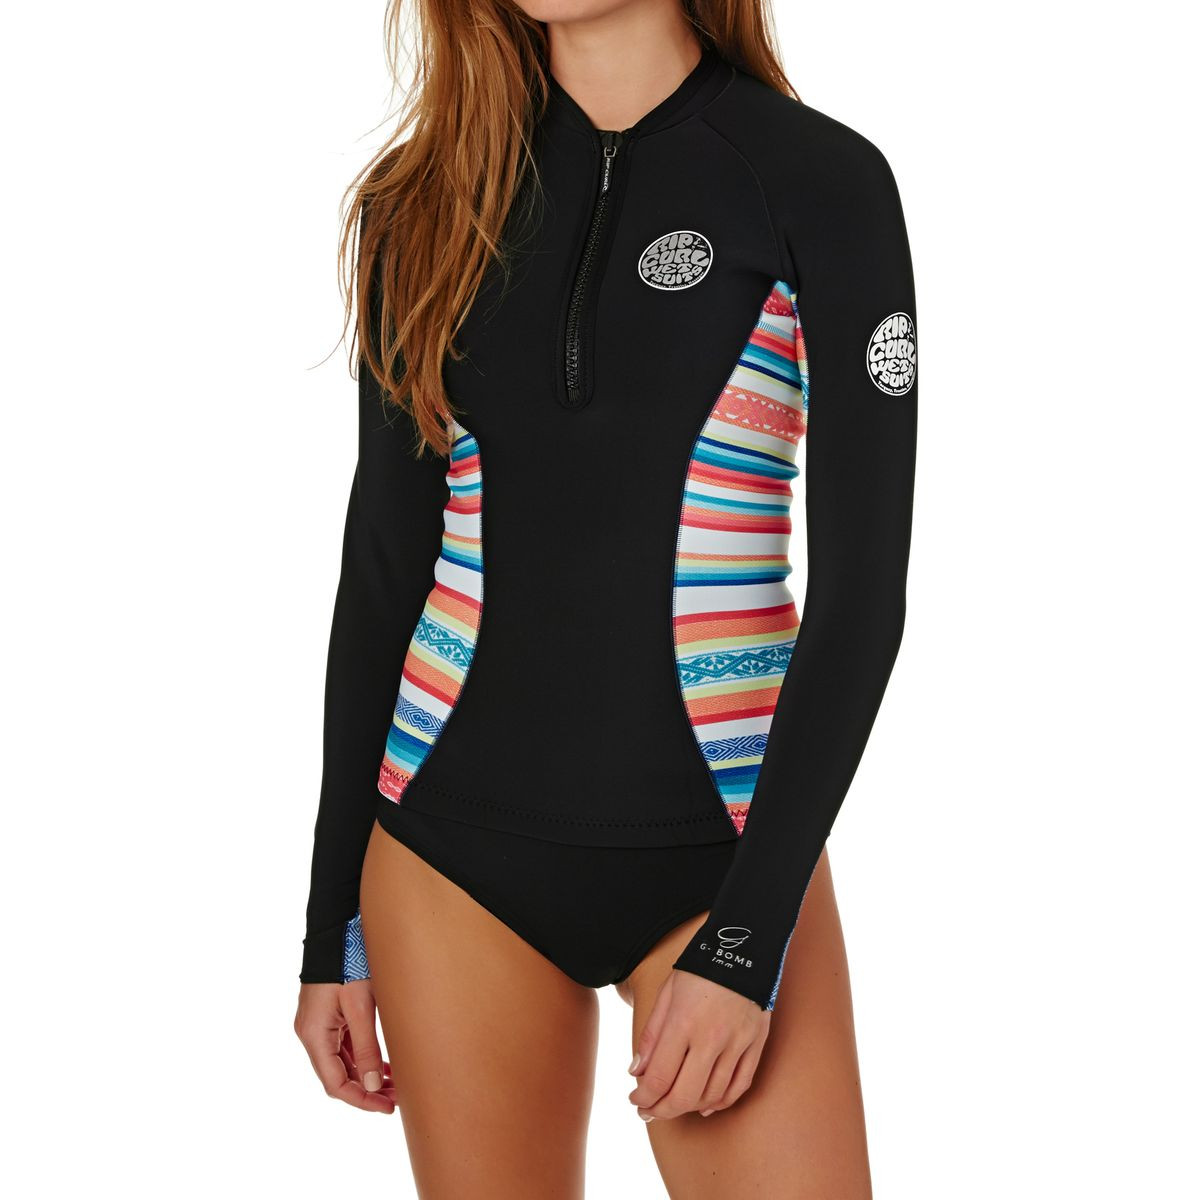 Rip Curl Womens G-Bomb 1mm 2017 Front Zip Long Sleeve Wetsuit Jacket - Stripe